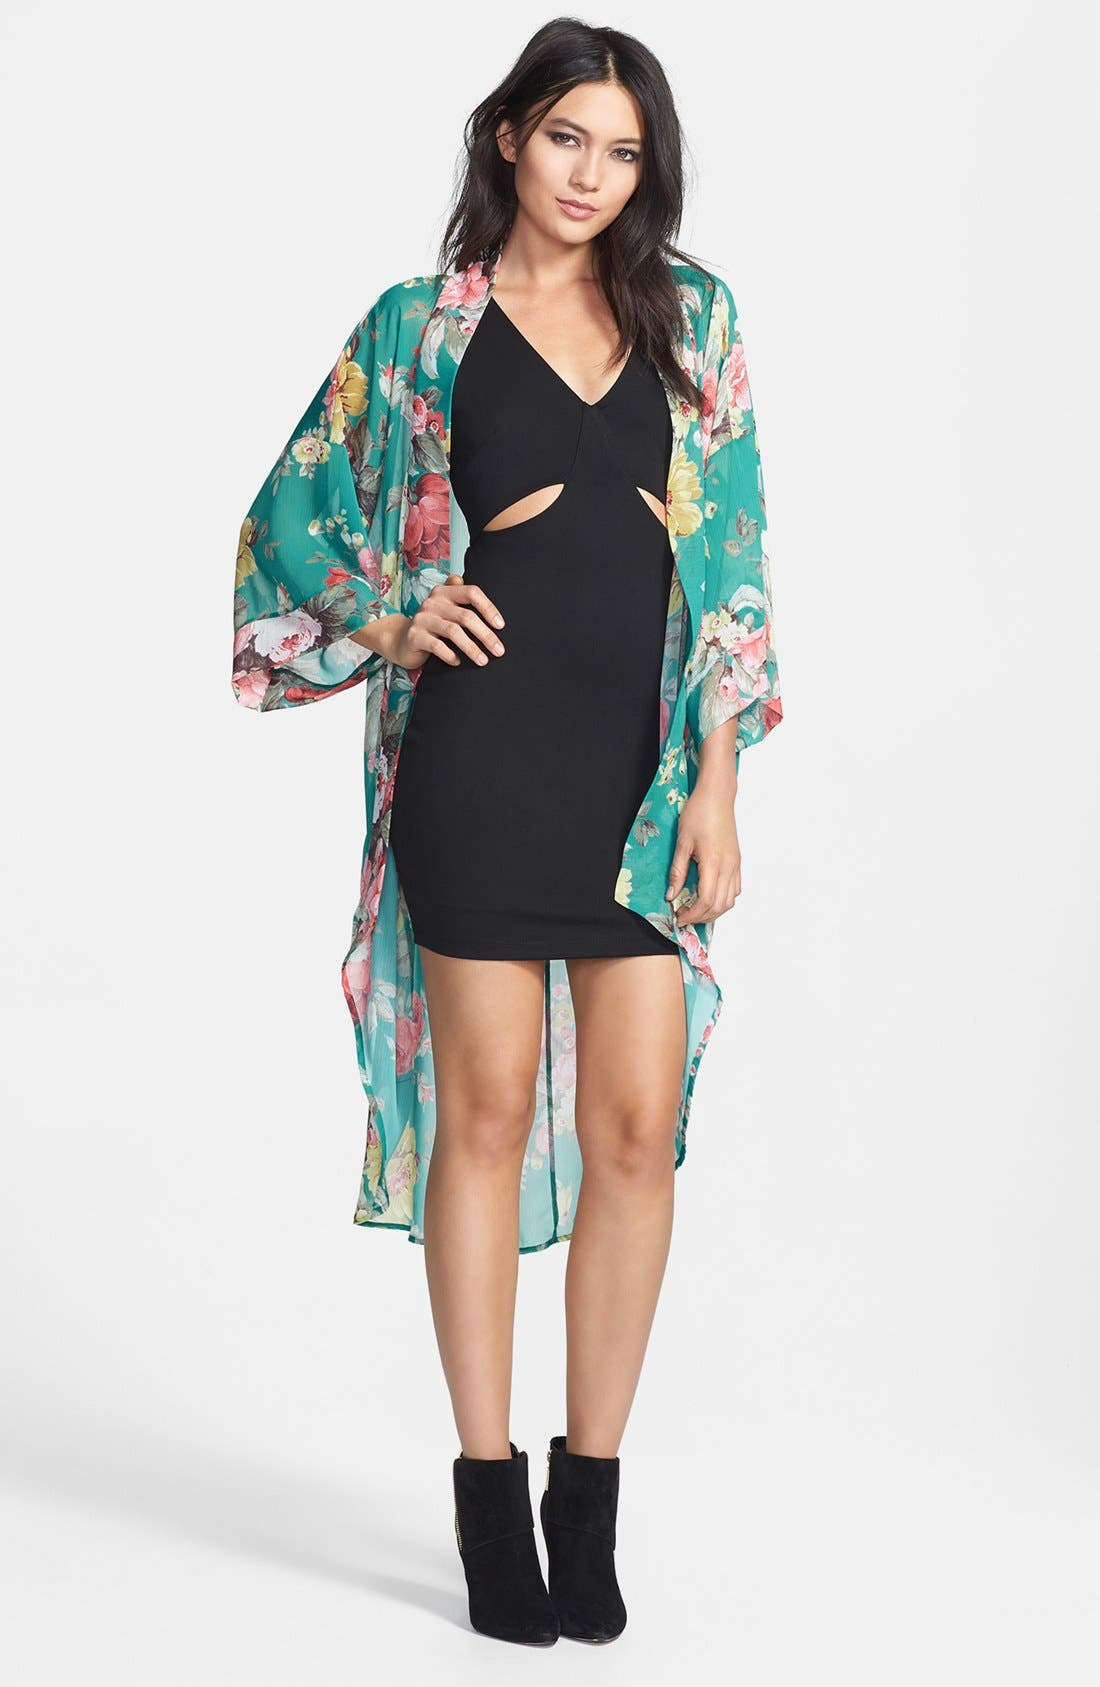 Alternate Image 1 Selected - Crash and Burn 'Marie' Floral Chiffon Cardigan